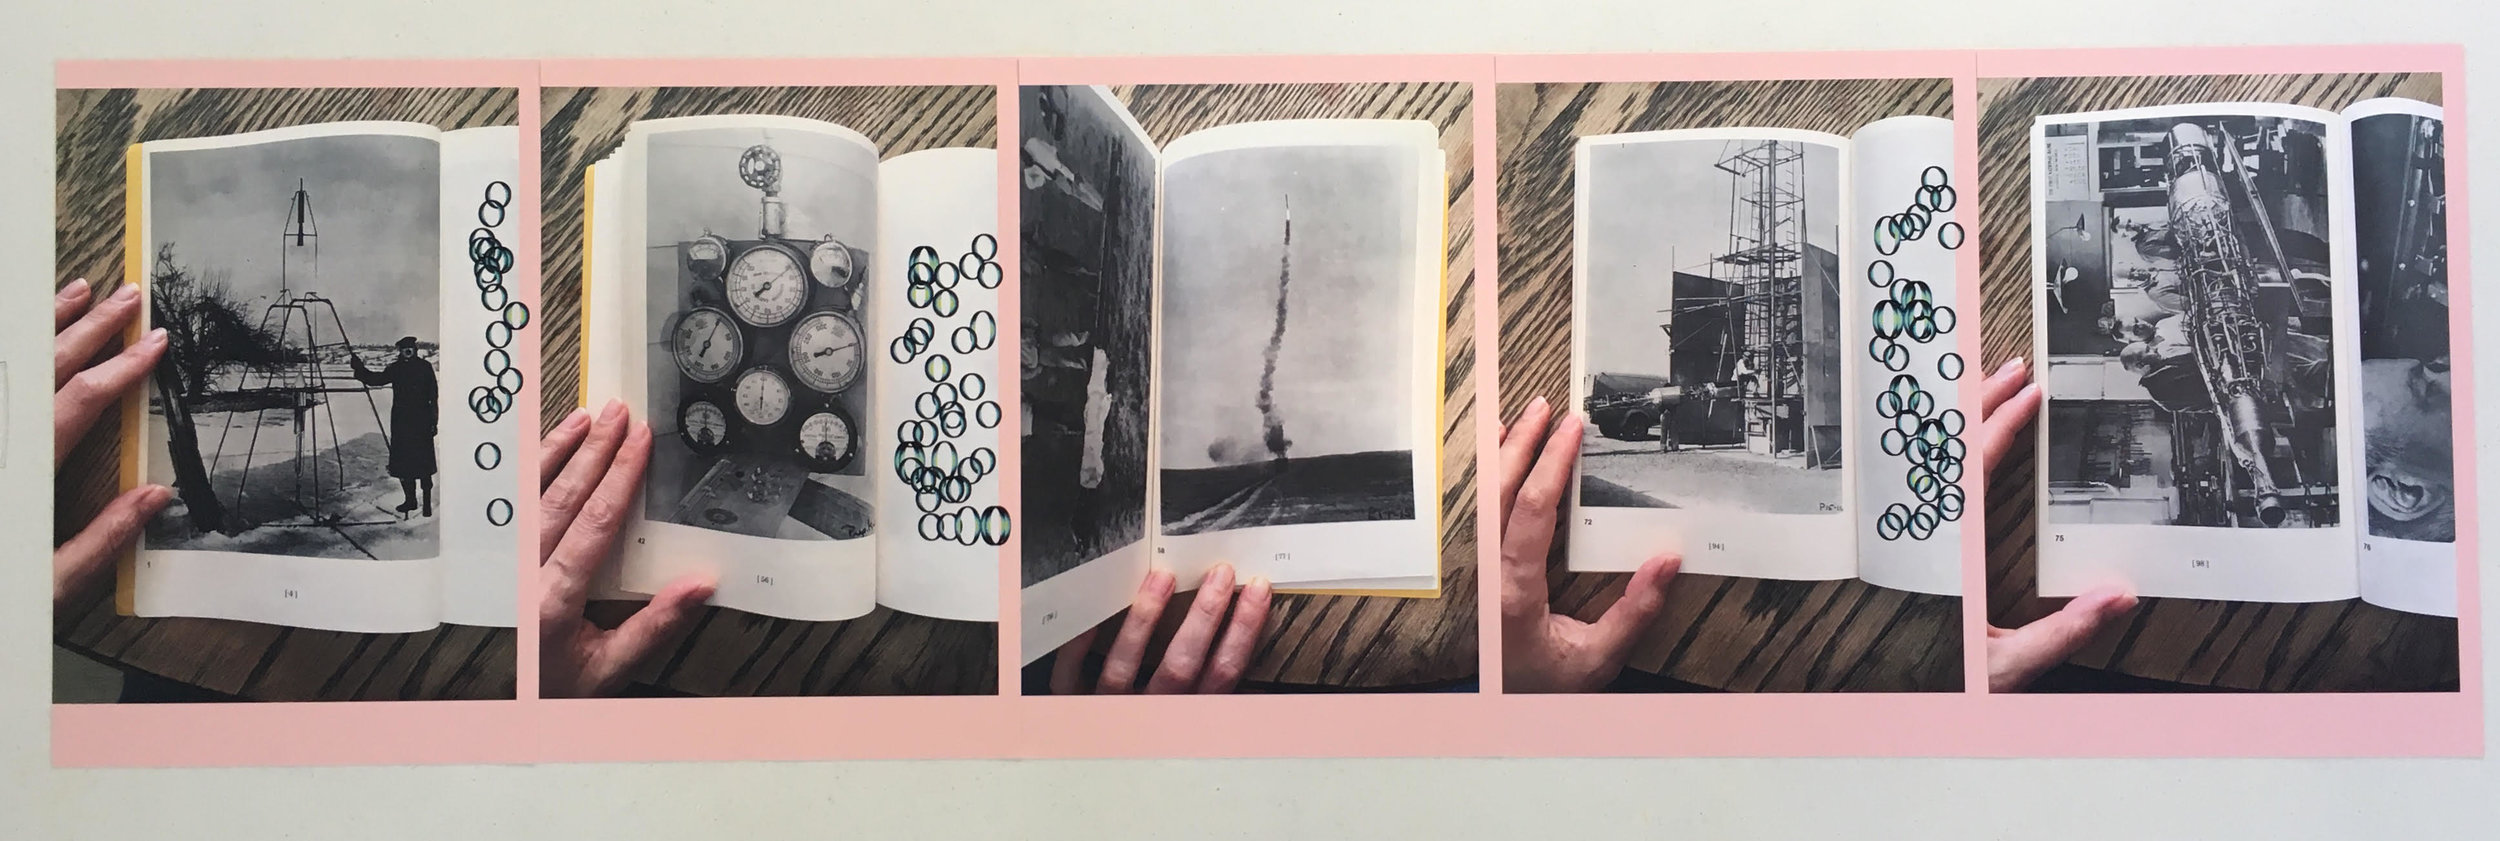 AMoCA Collection  |  Handling Goddard #1, #42, #58, #72, #75 , Archival pigment on fibre based paper, Edition of 5 (2 AP), each H. 48 x W. 33 cm., 2017